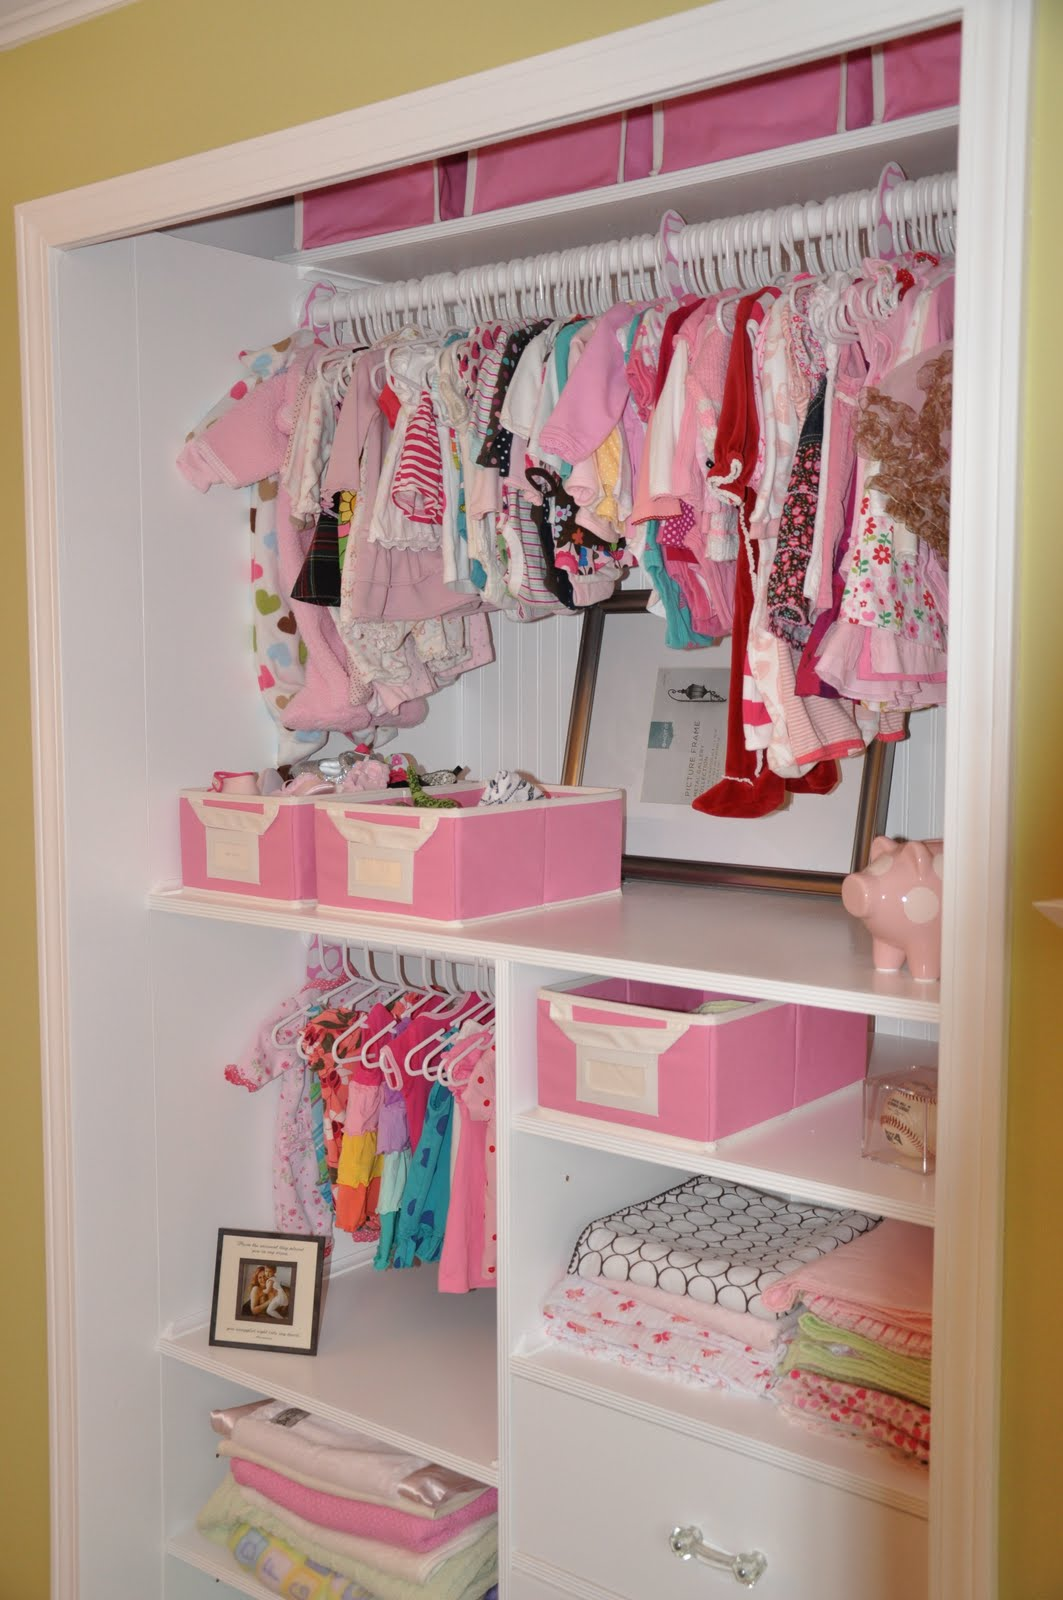 A Closet Affair A Baby Girl's Closet  A Side Of Style